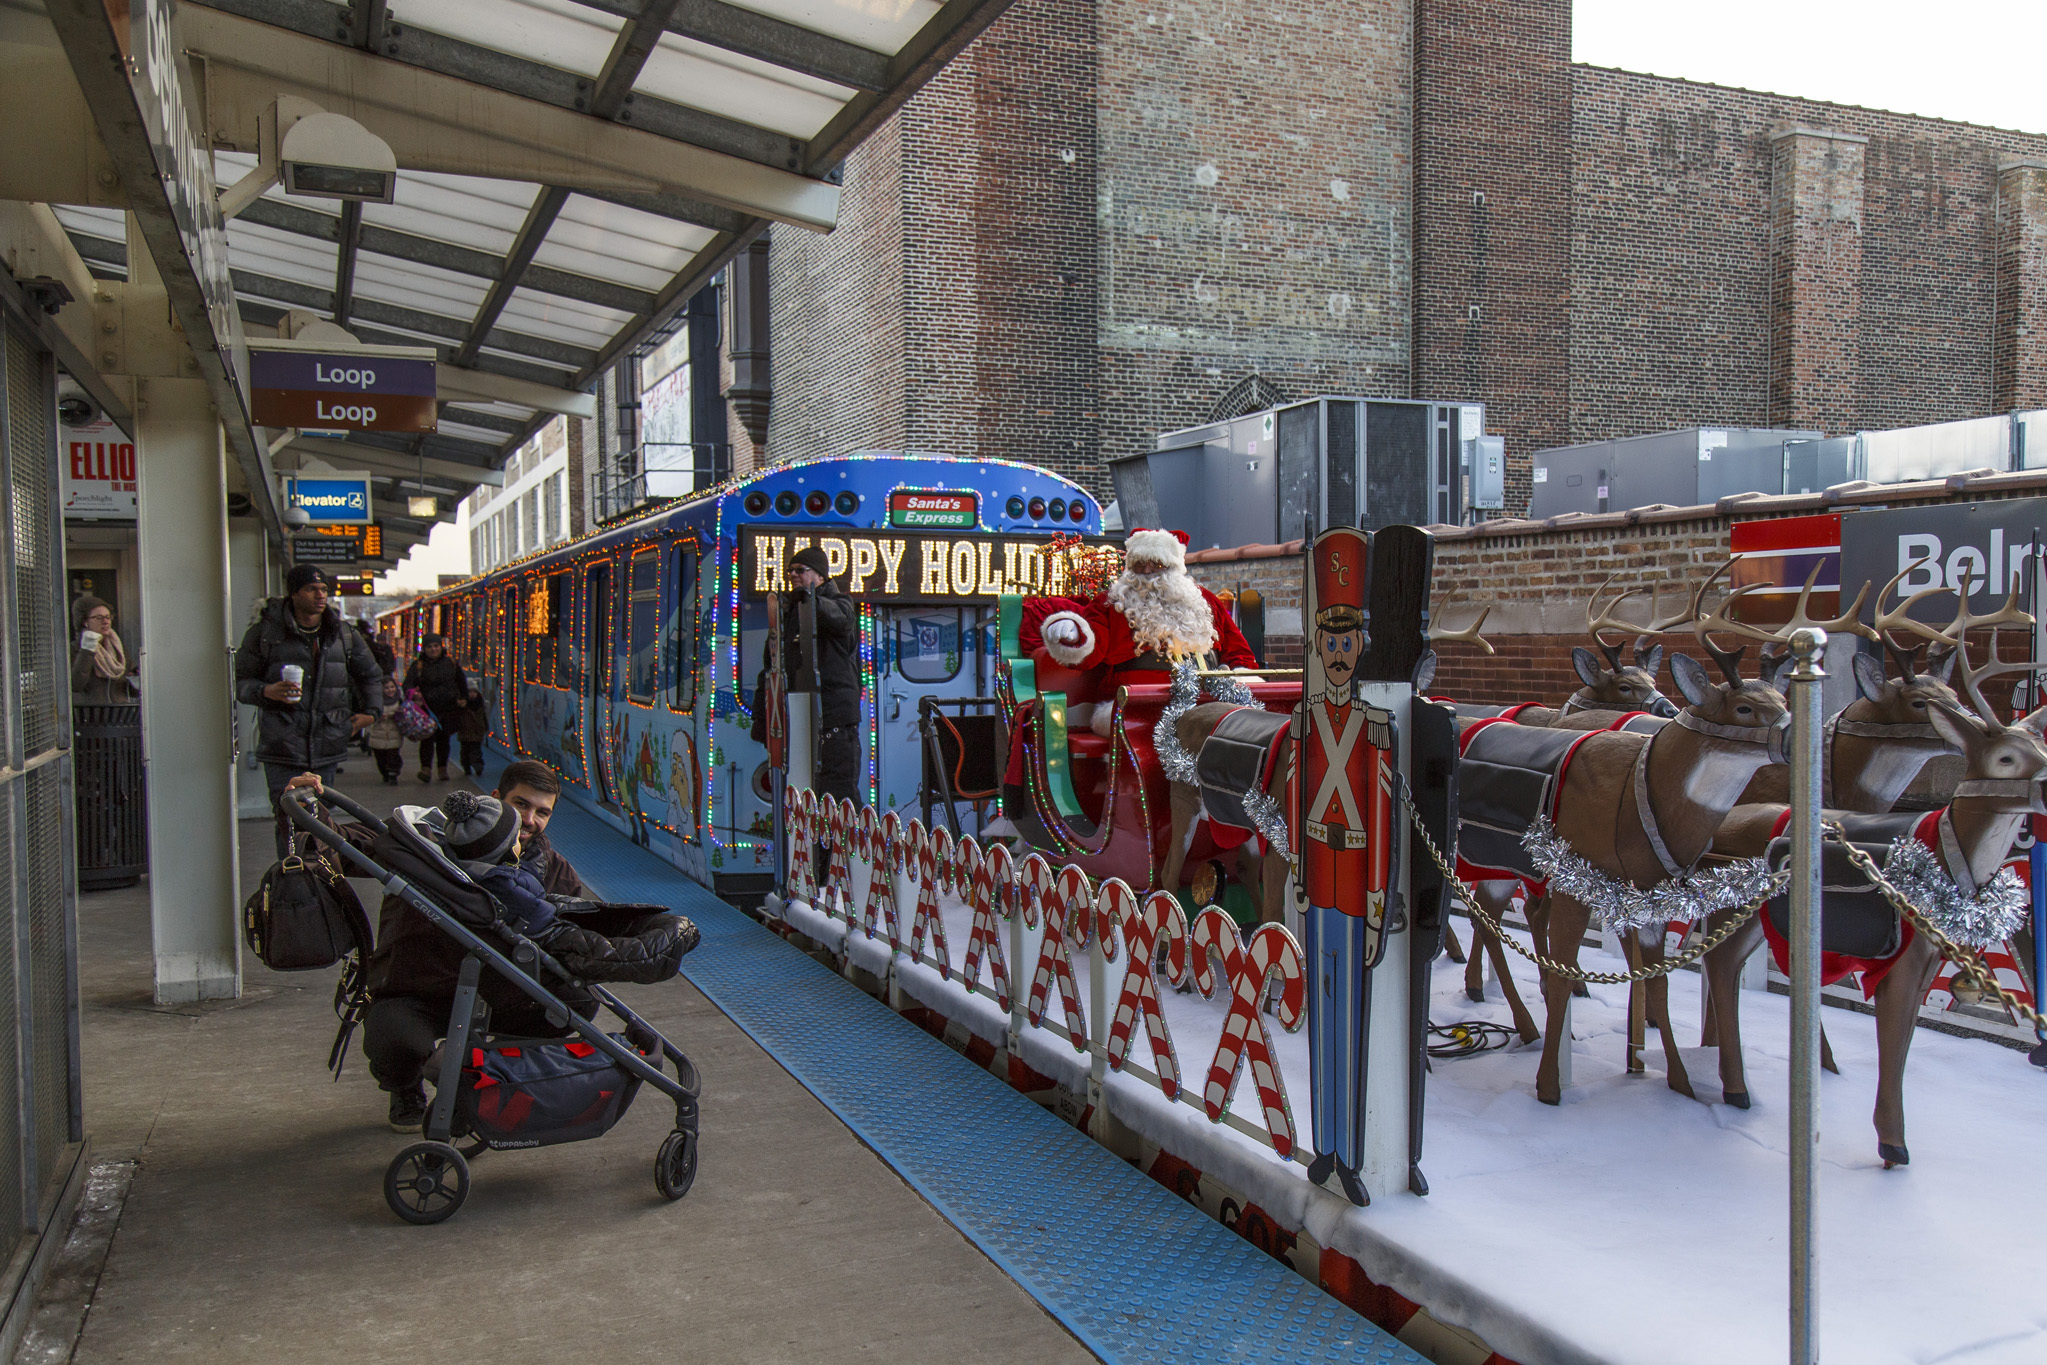 The complete CTA Holiday Train schedule has arrived